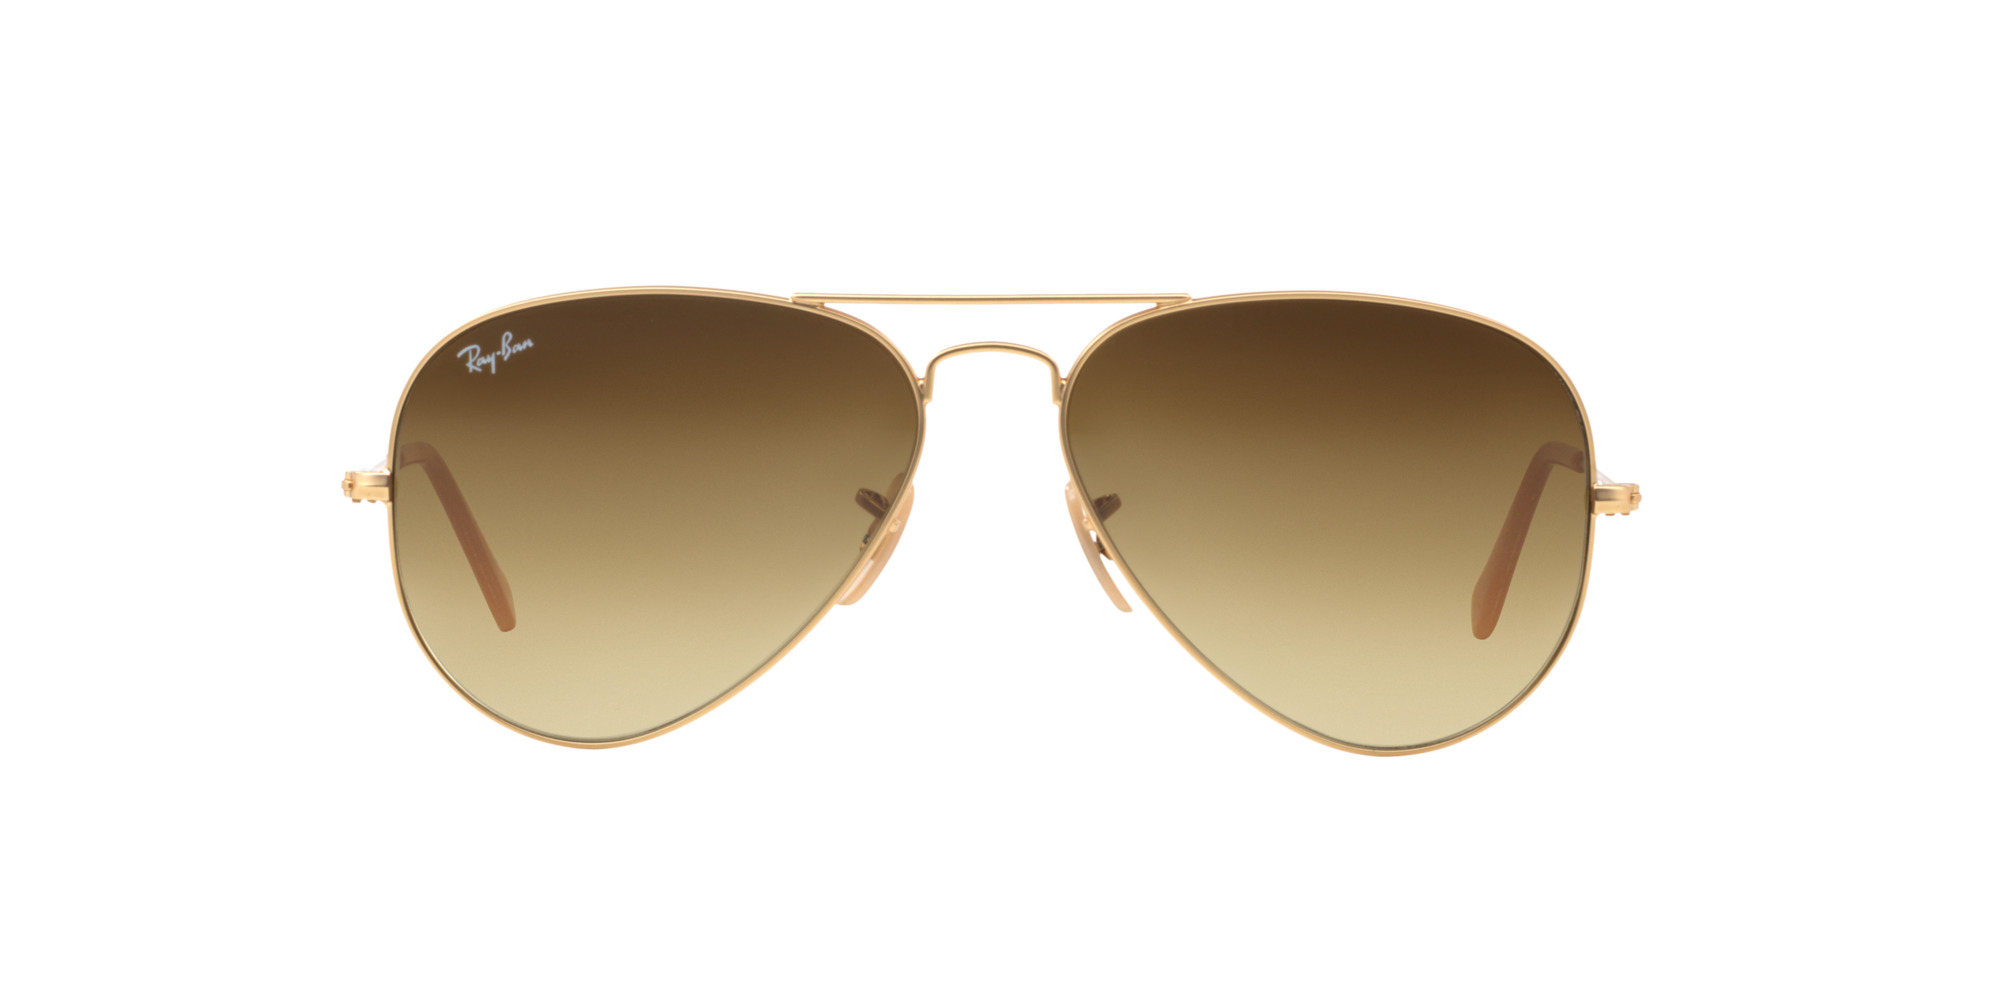 RAY-BAN AVIATOR RB 3025 112/85 58mm.-360